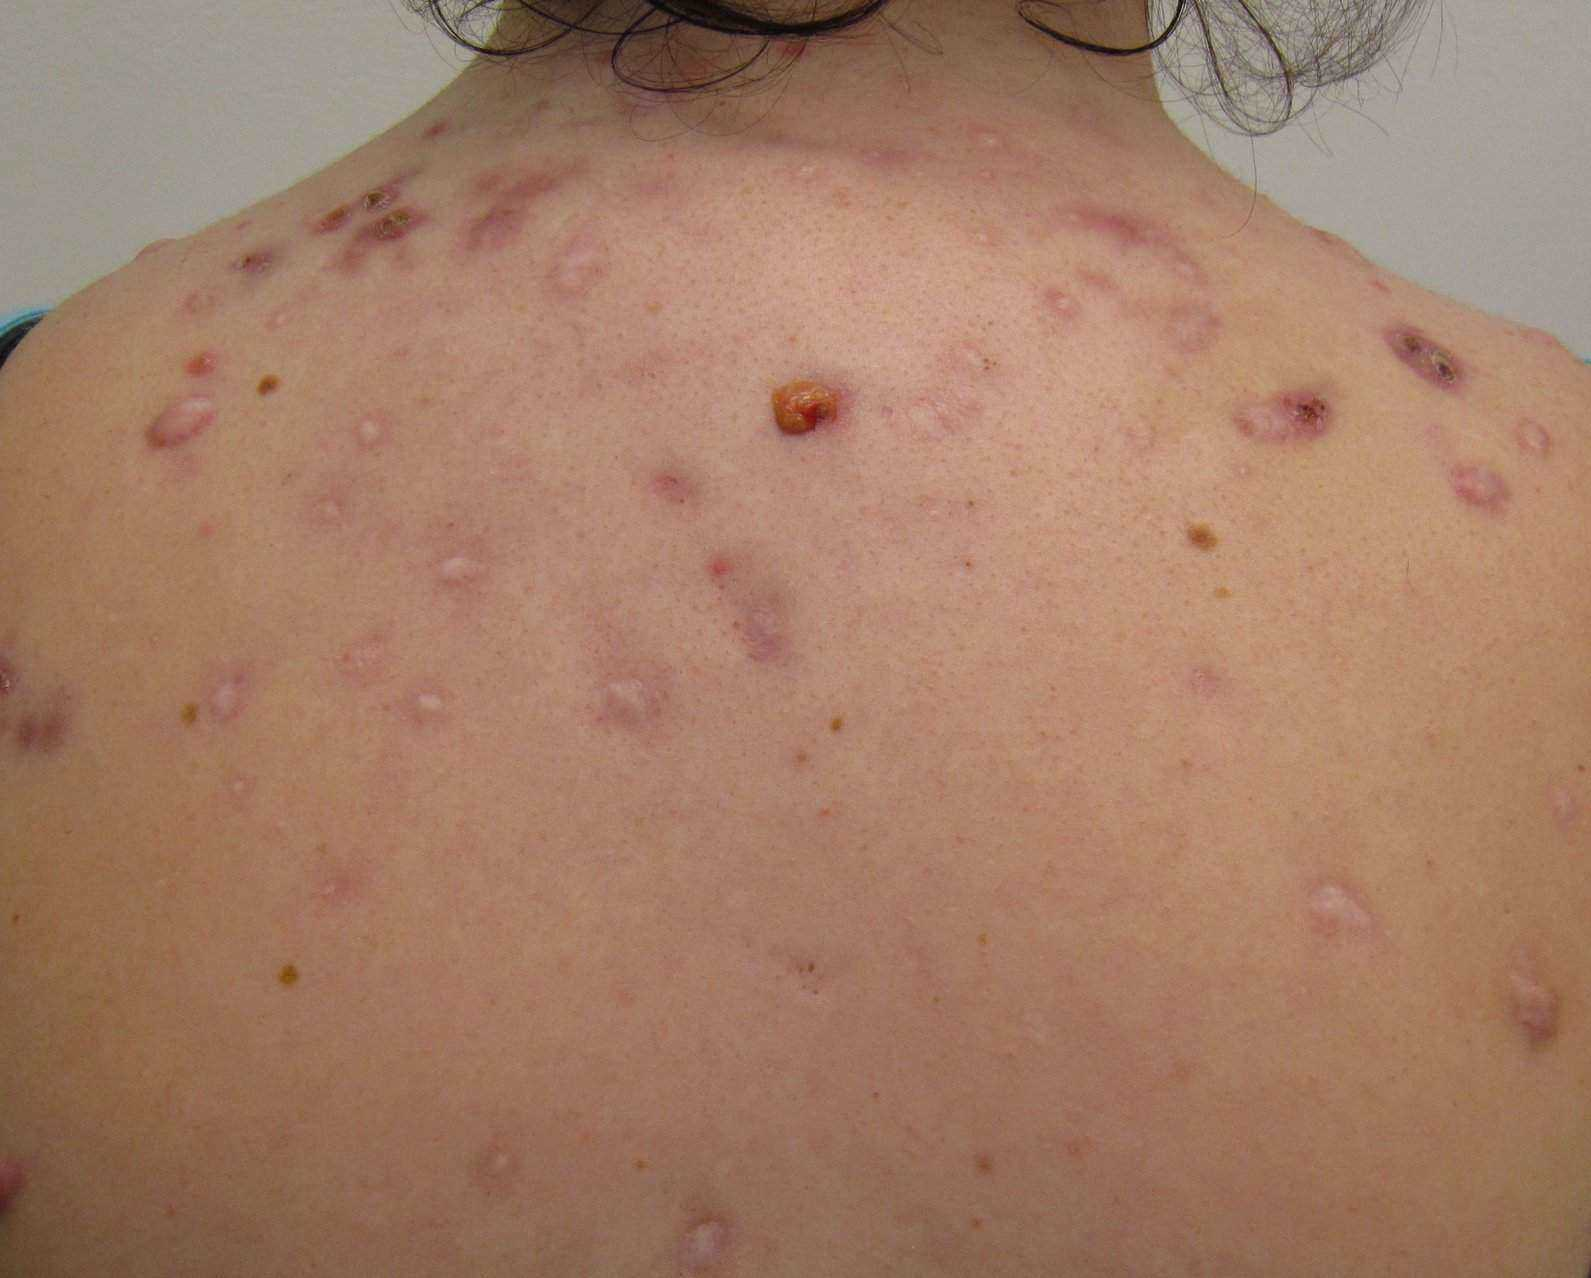 Body acne during pregnancy